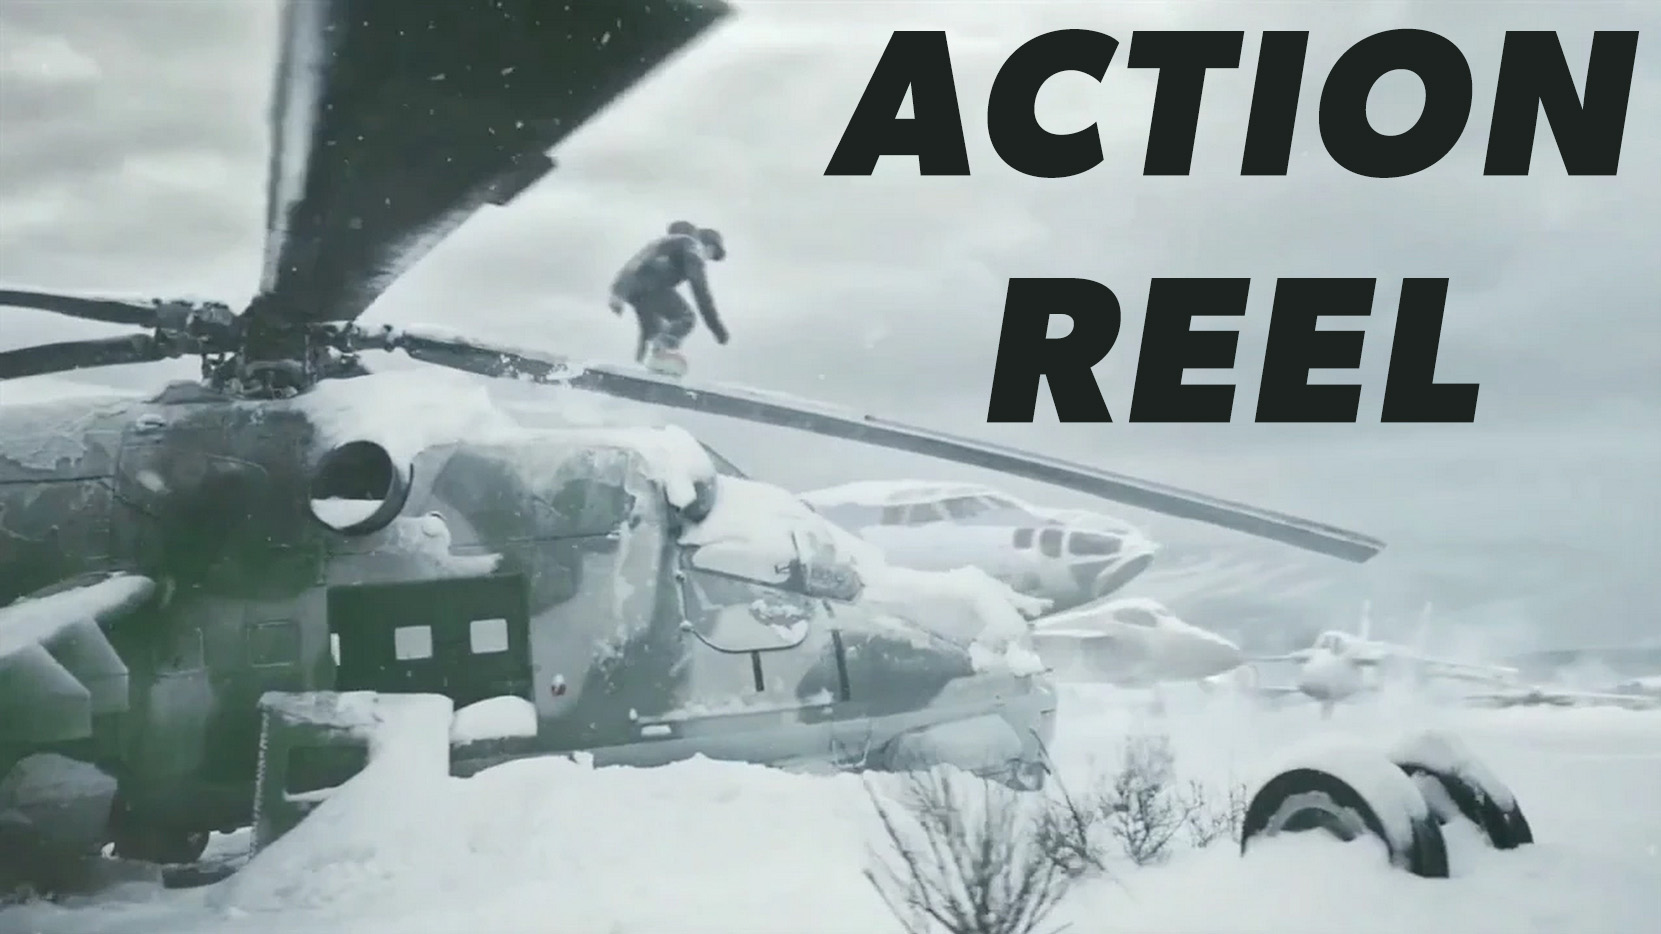 Action Reel